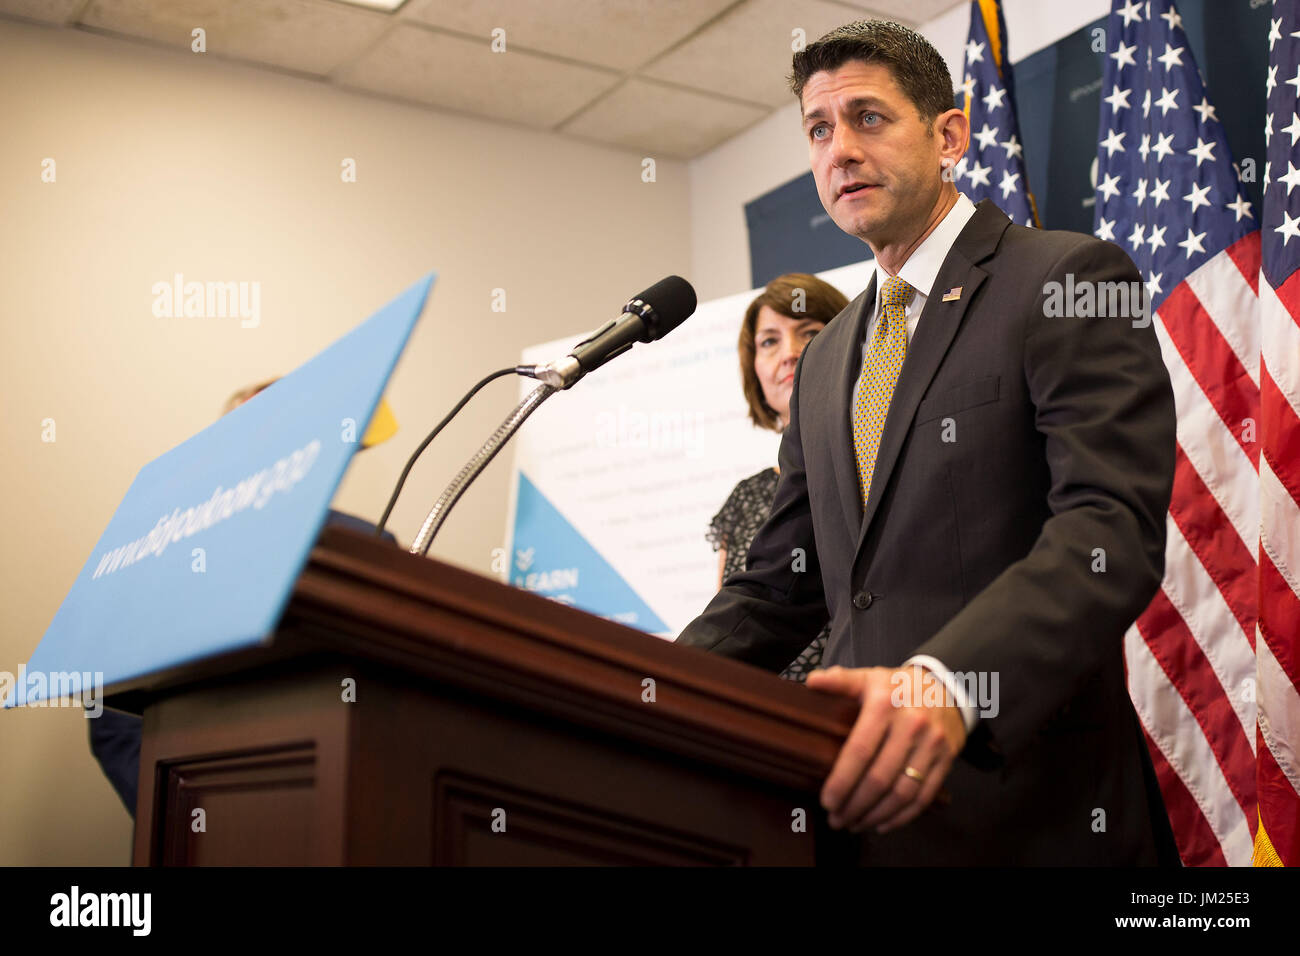 Washington, USA. 25th July, 2017. U.S. House Speaker Paul Ryan (Front) speaks at a press conference on Capitol Hill Stock Photo